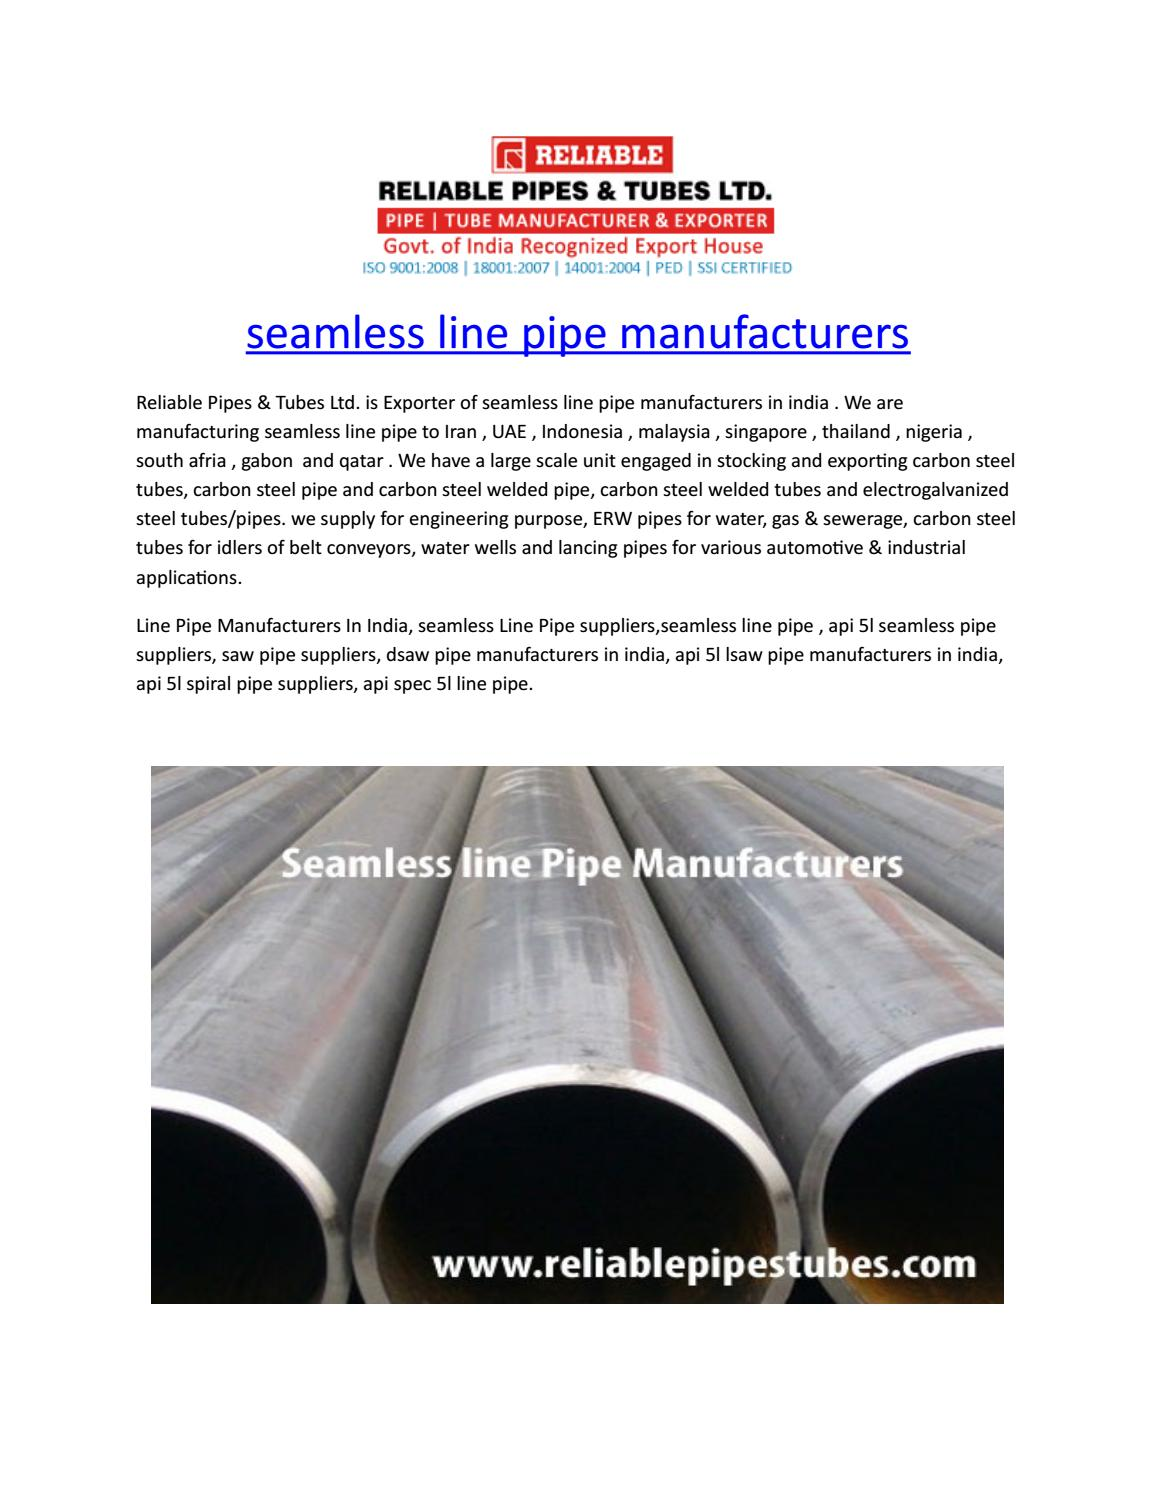 Seamless line pipe manufacturers by reliablepipestubes - issuu